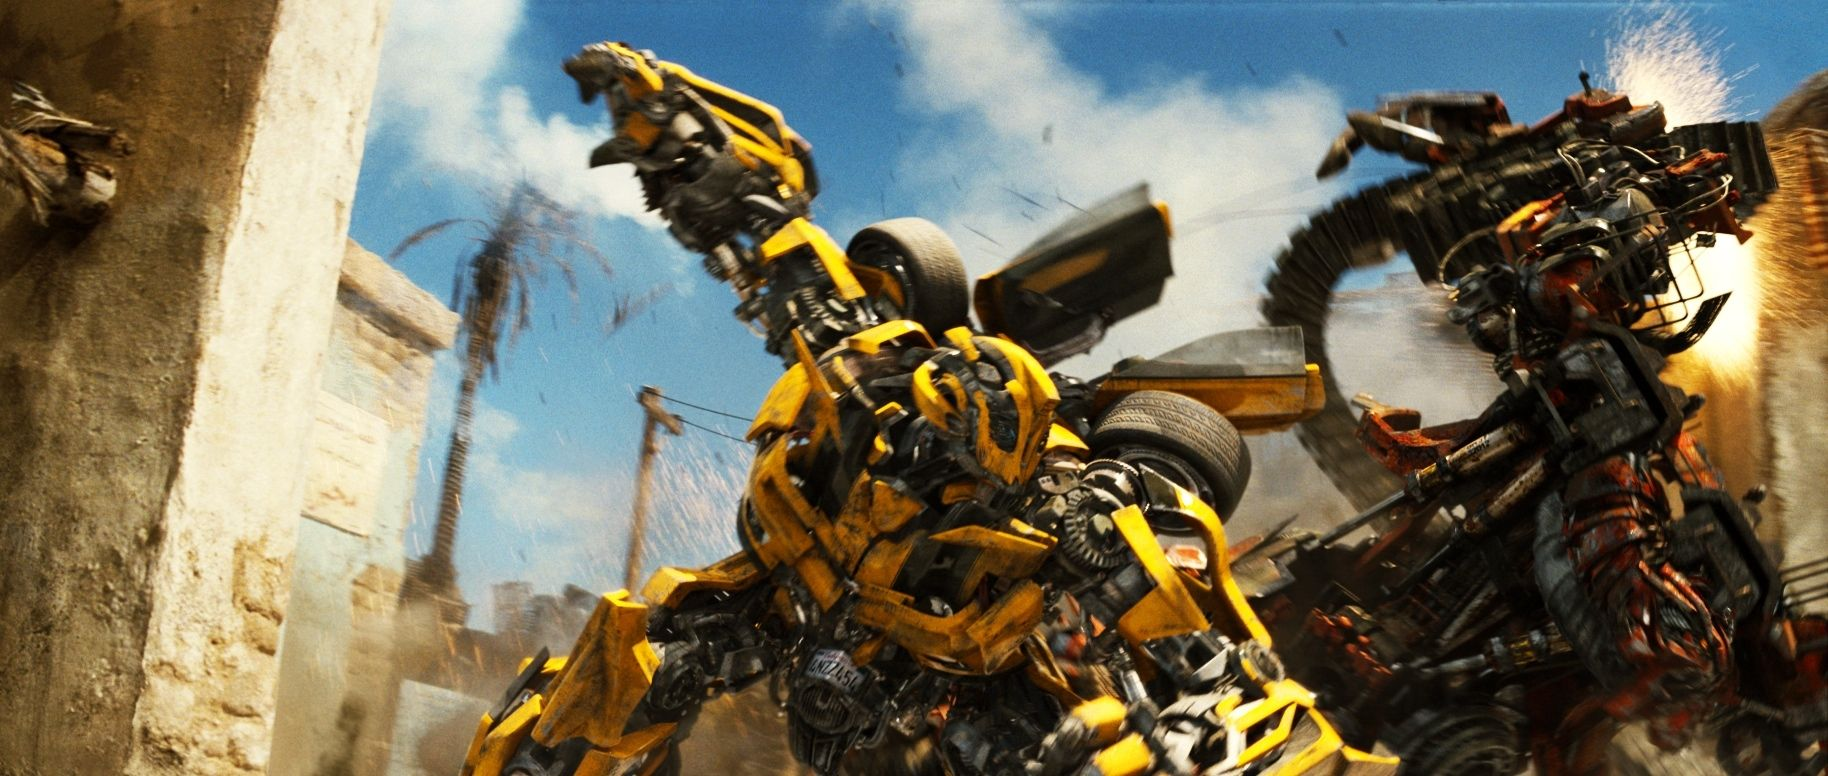 transfomres 2 bumblebee fight Revenge of the Fallen May Have Its Revenge...